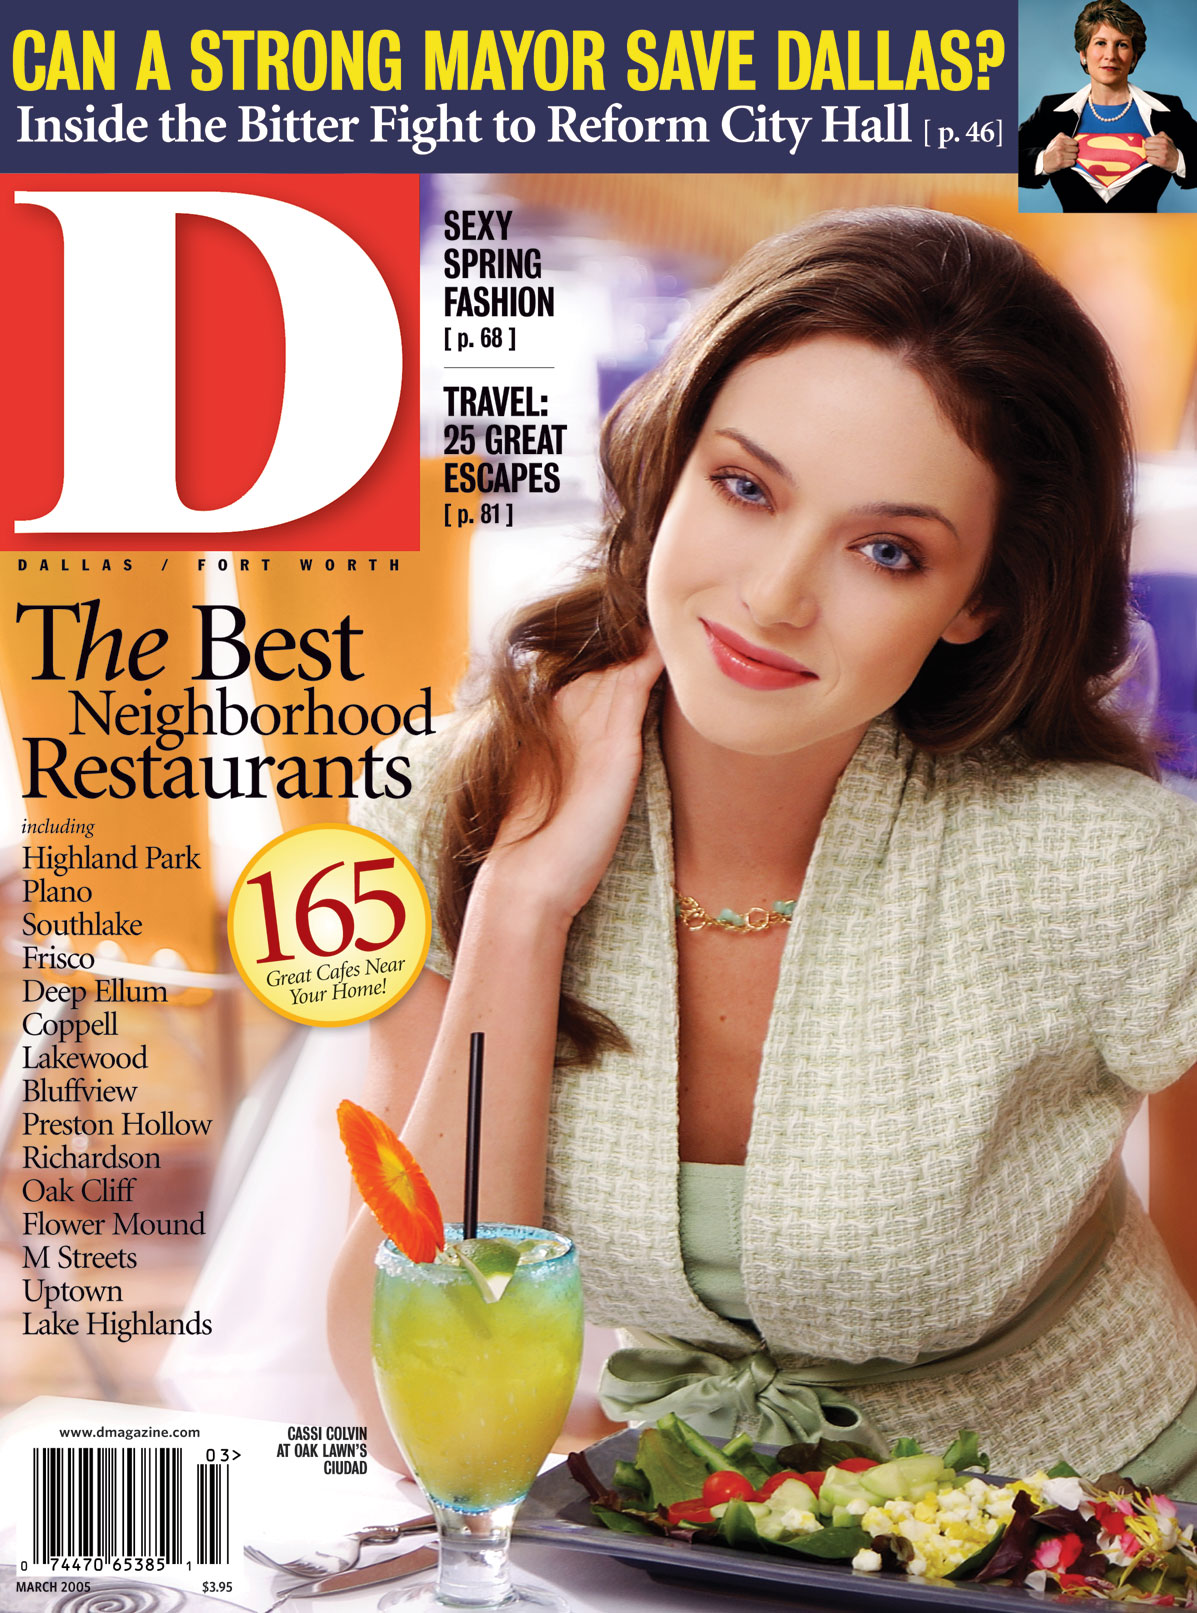 March 2005 cover